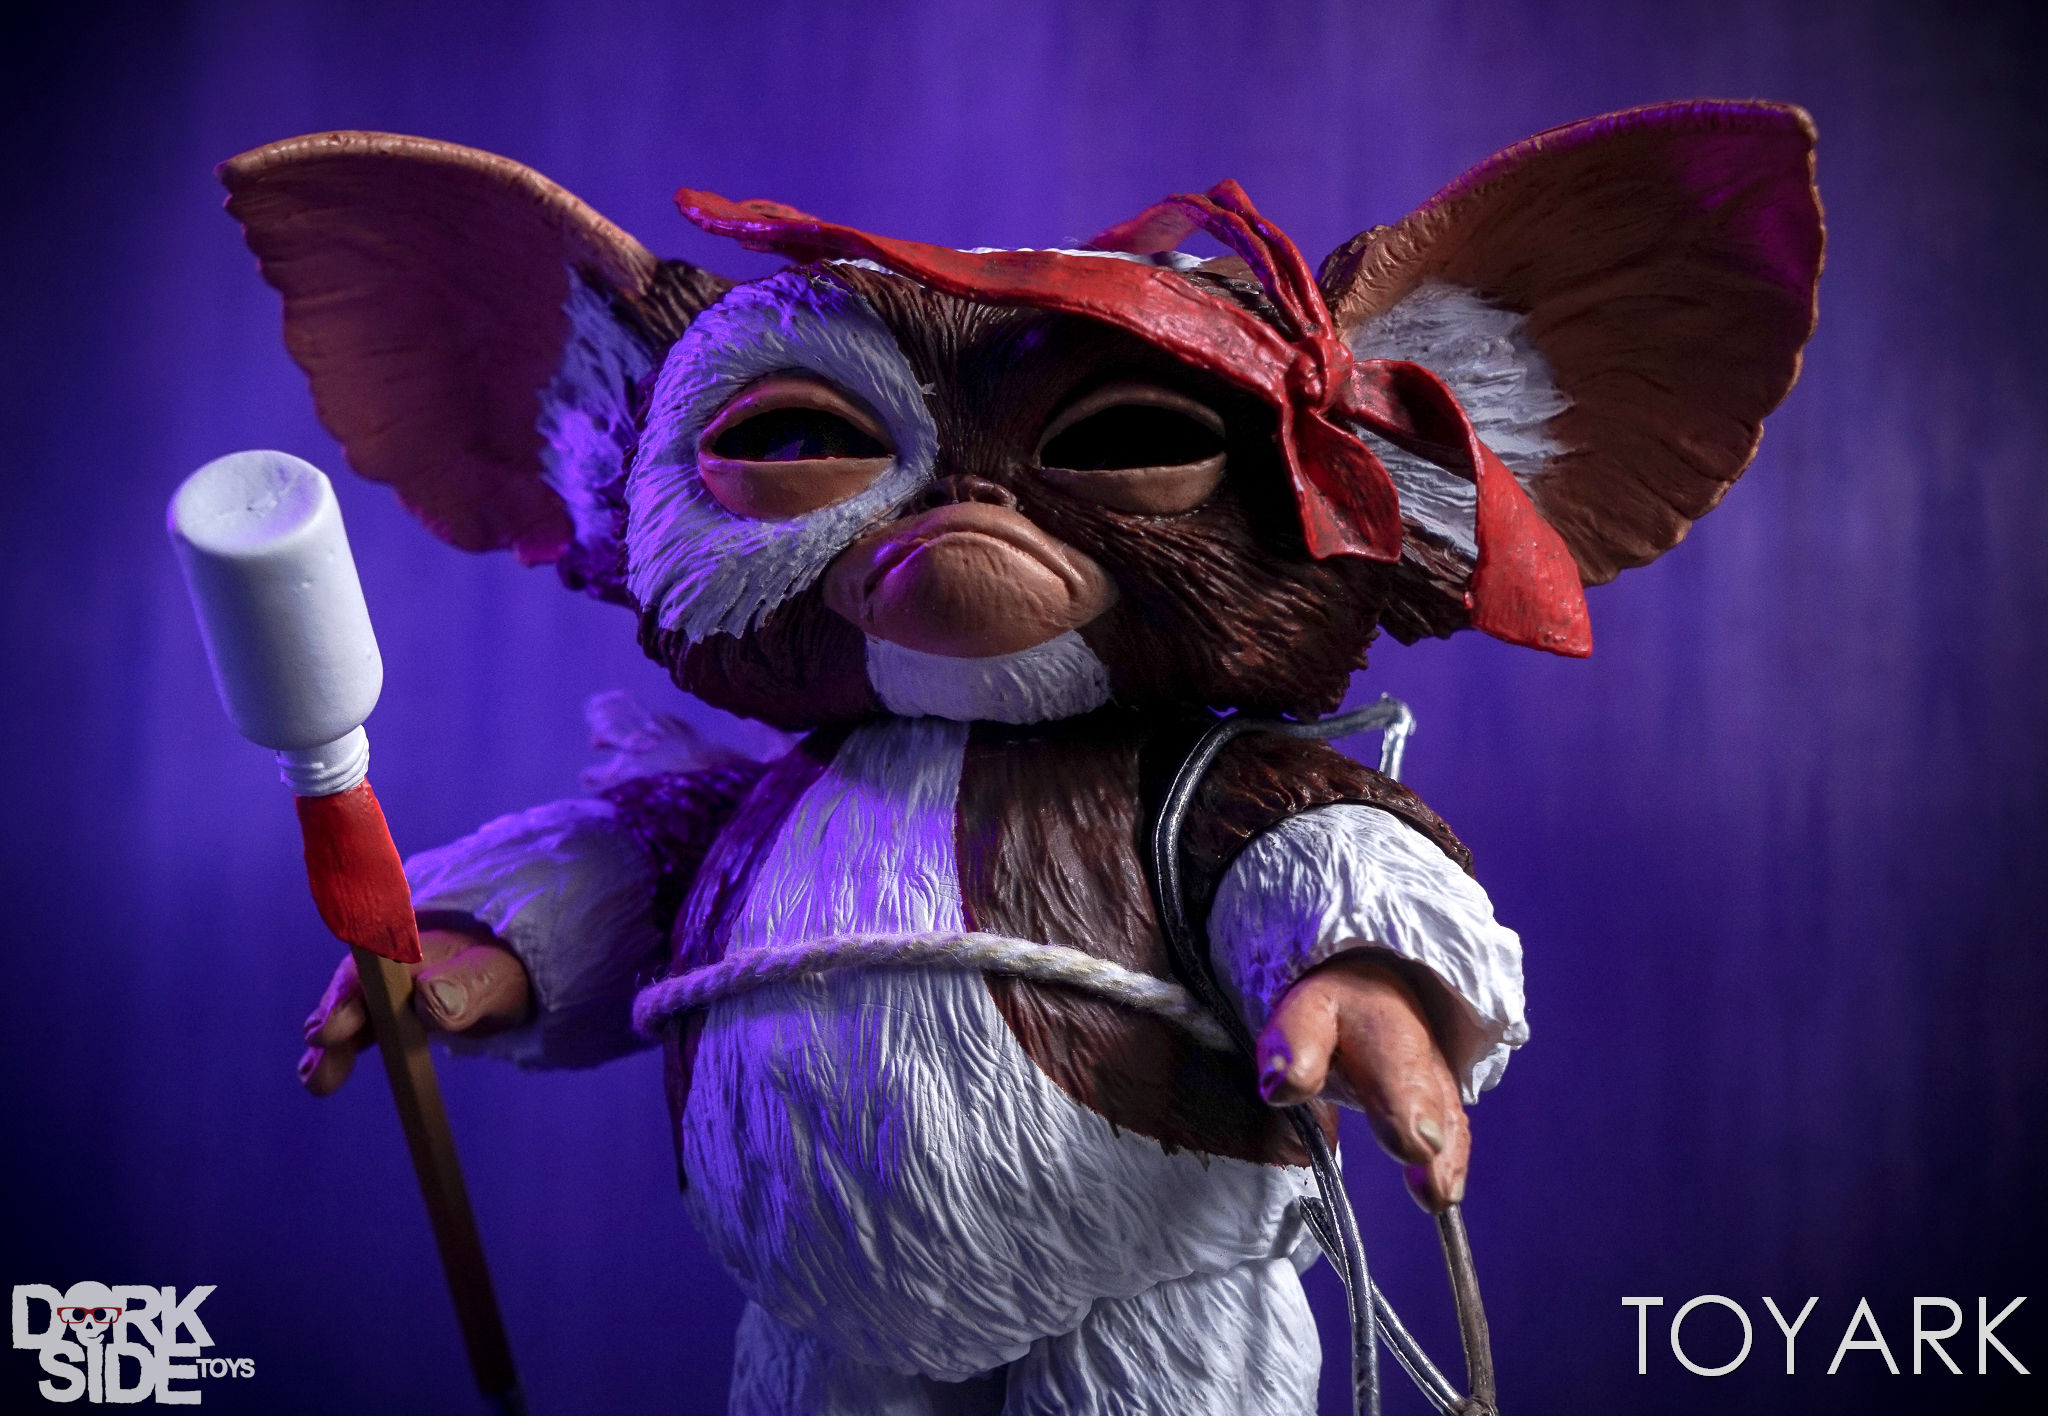 http://news.toyark.com/wp-content/uploads/sites/4/2017/04/NECA-Gremlins-Ultimate-Gizmo-041.jpg